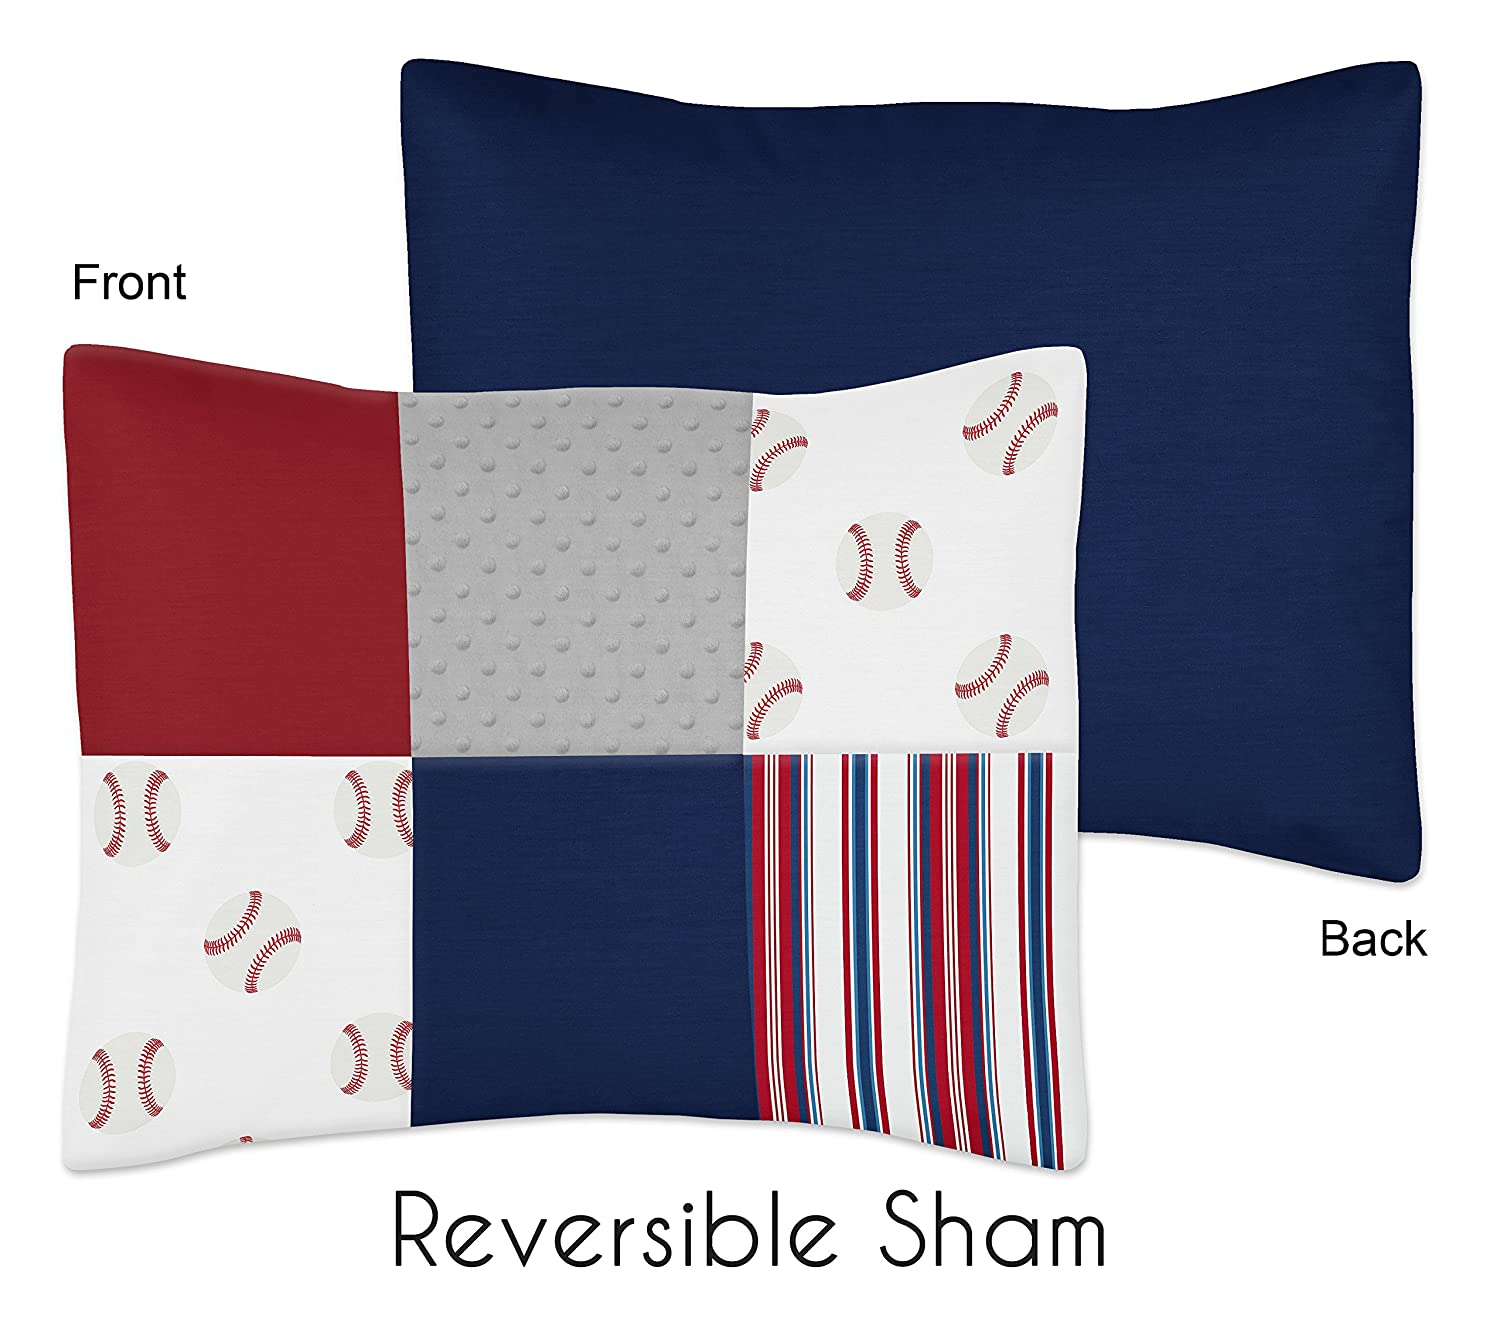 Sweet Jojo Designs Red, White and Blue Baseball Patch Sports Boy Toddler Kid Childrens Bedding Set - 5 Pieces Comforter, Sham and Sheets - Grey Patchwork Stripe 914nH5RstVL._SL1500_